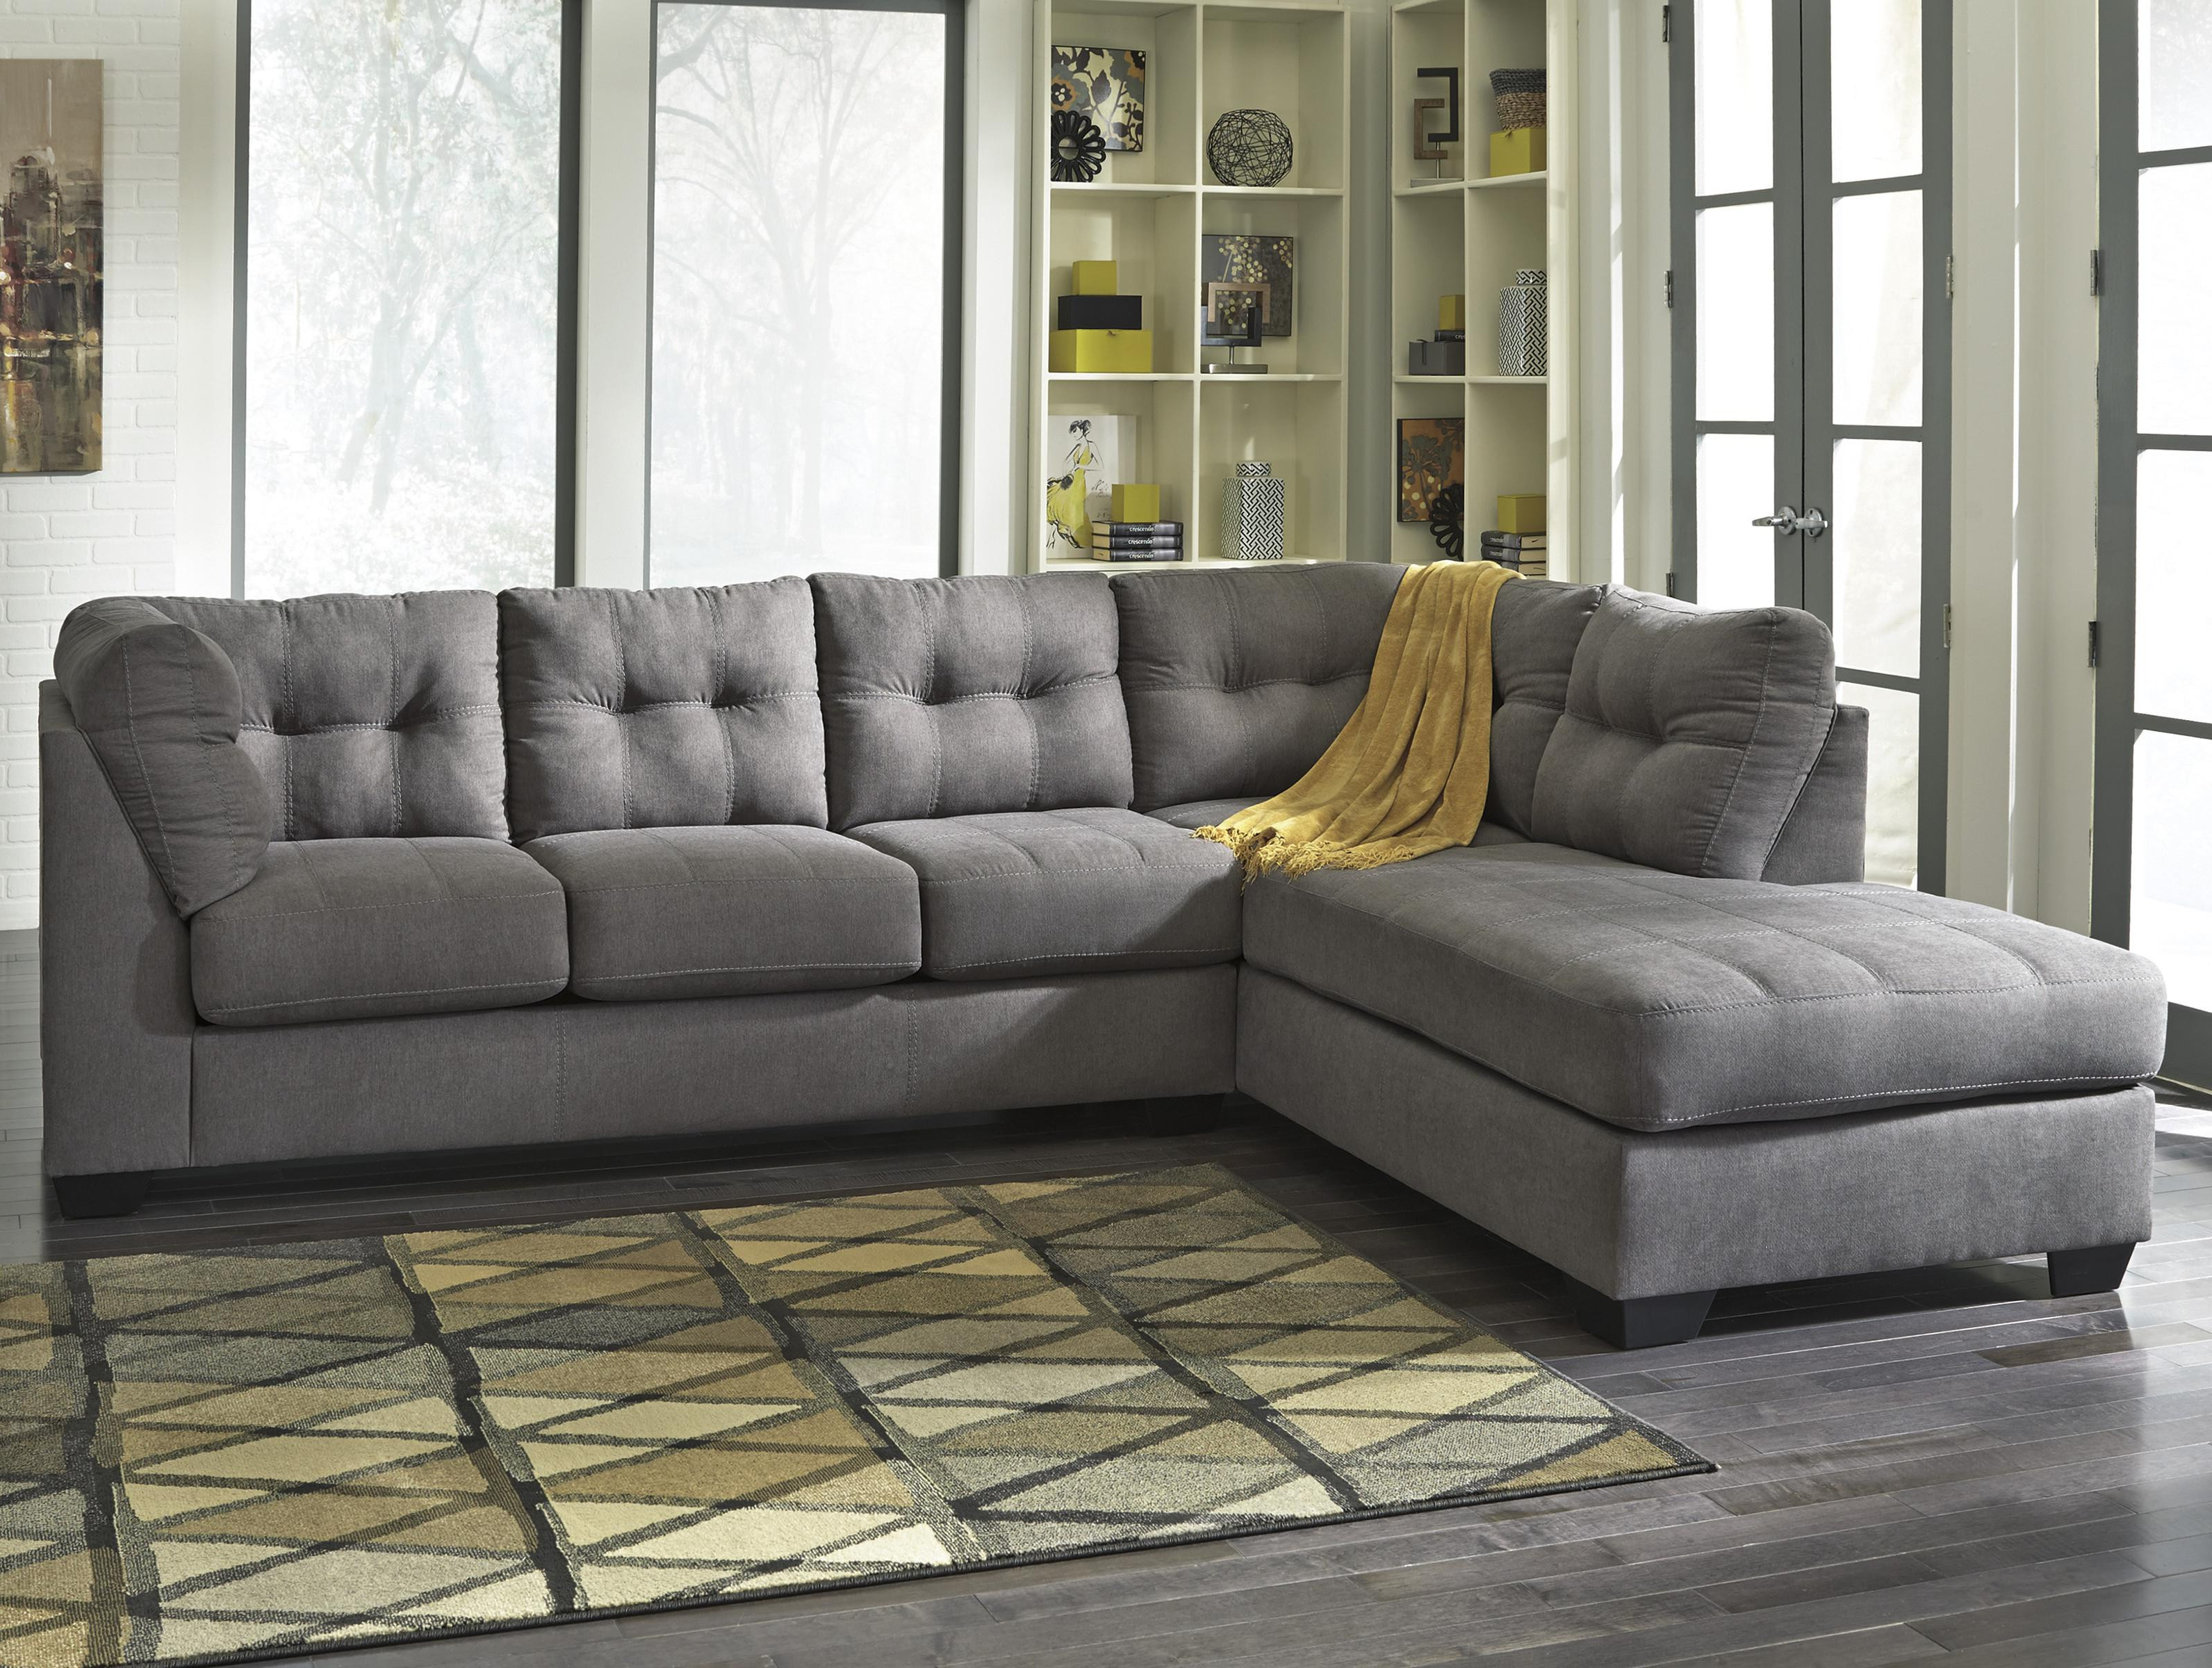 Favorite New 2 Piece Sectional With Chaise Lounge – Buildsimplehome Throughout Kerri 2 Piece Sectionals With Raf Chaise (Gallery 18 of 20)